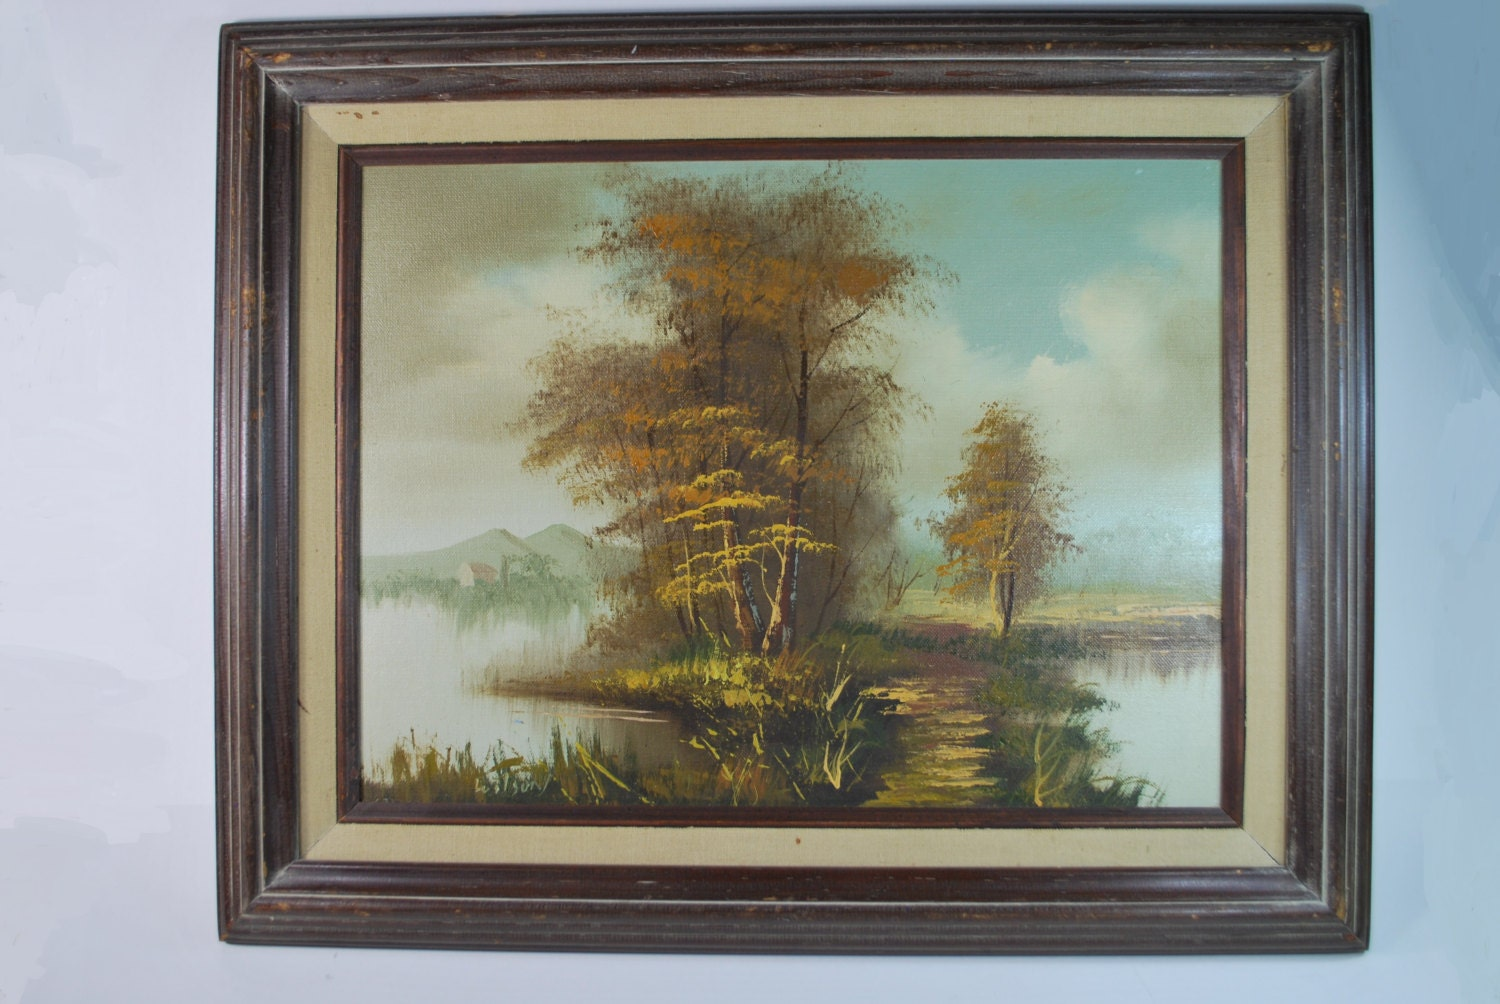 Sale Vintage Framed Landscape Oil Painting Signed Wilson